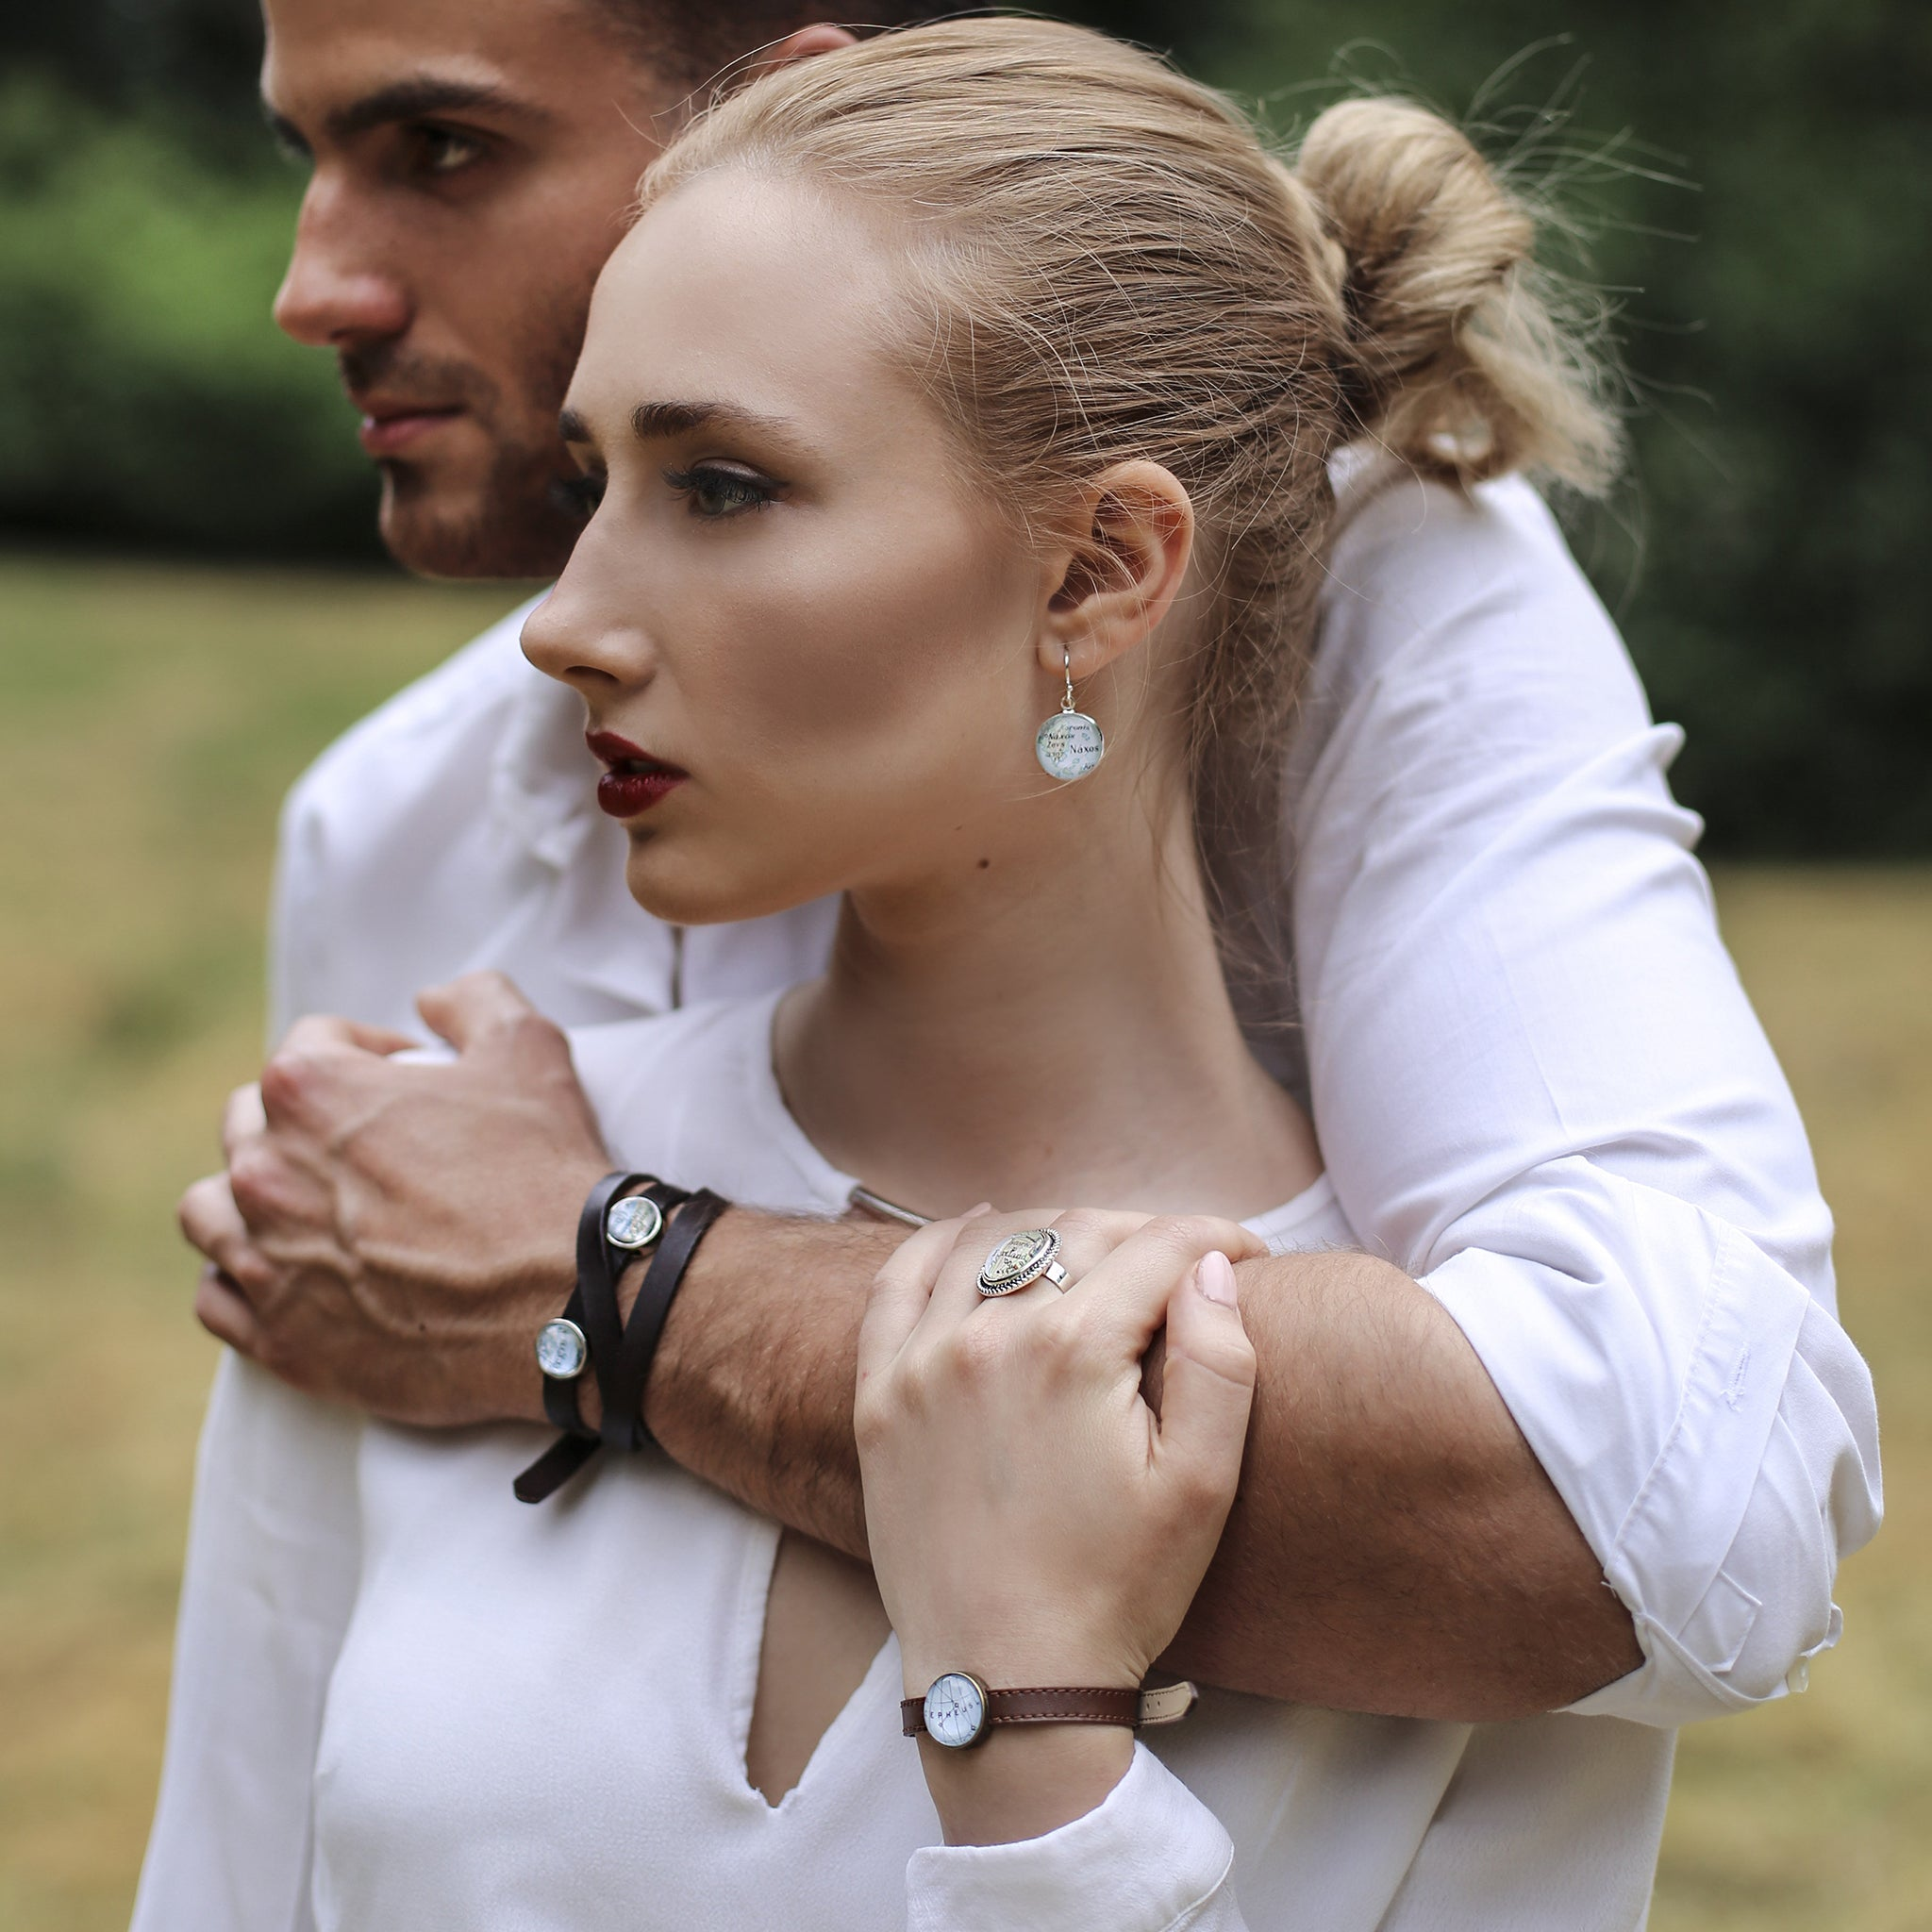 Model wearing Black leather bracelet with custom map location bead